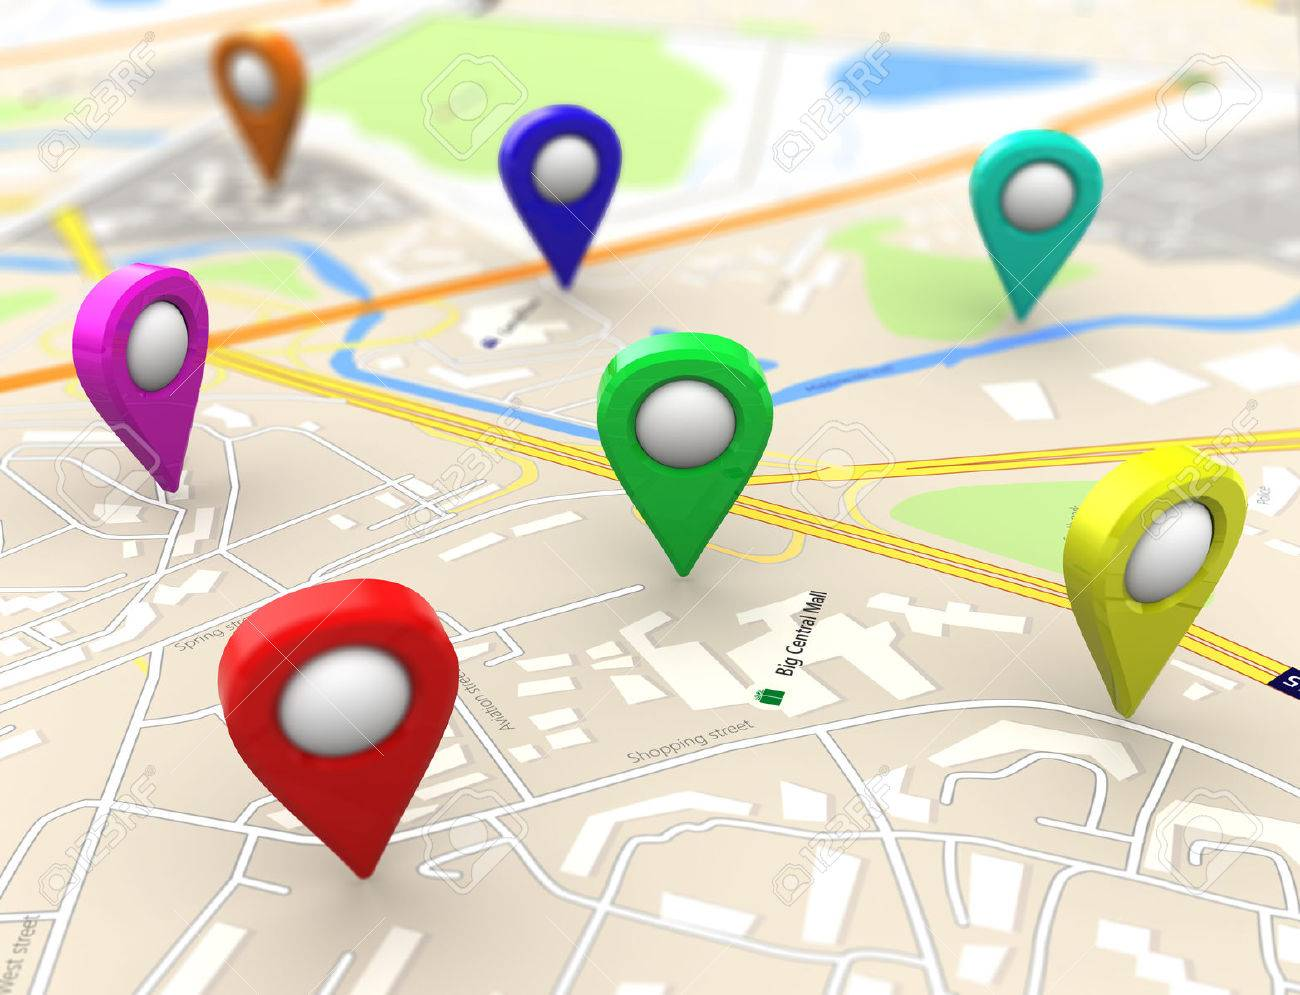 3d illustration of city maps with colorful targets - 49107179